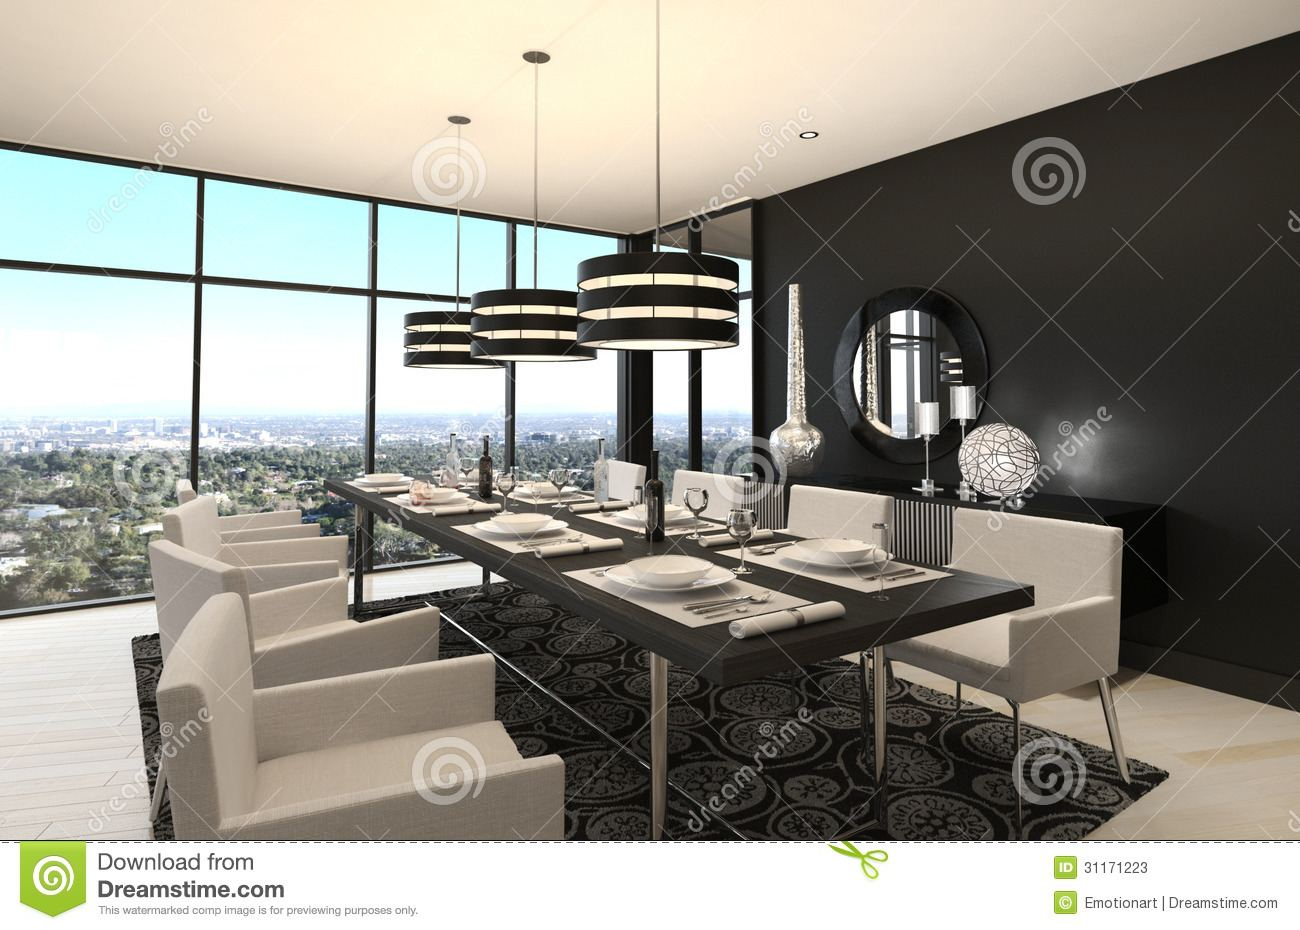 Creating a functional, modern dining room is easy